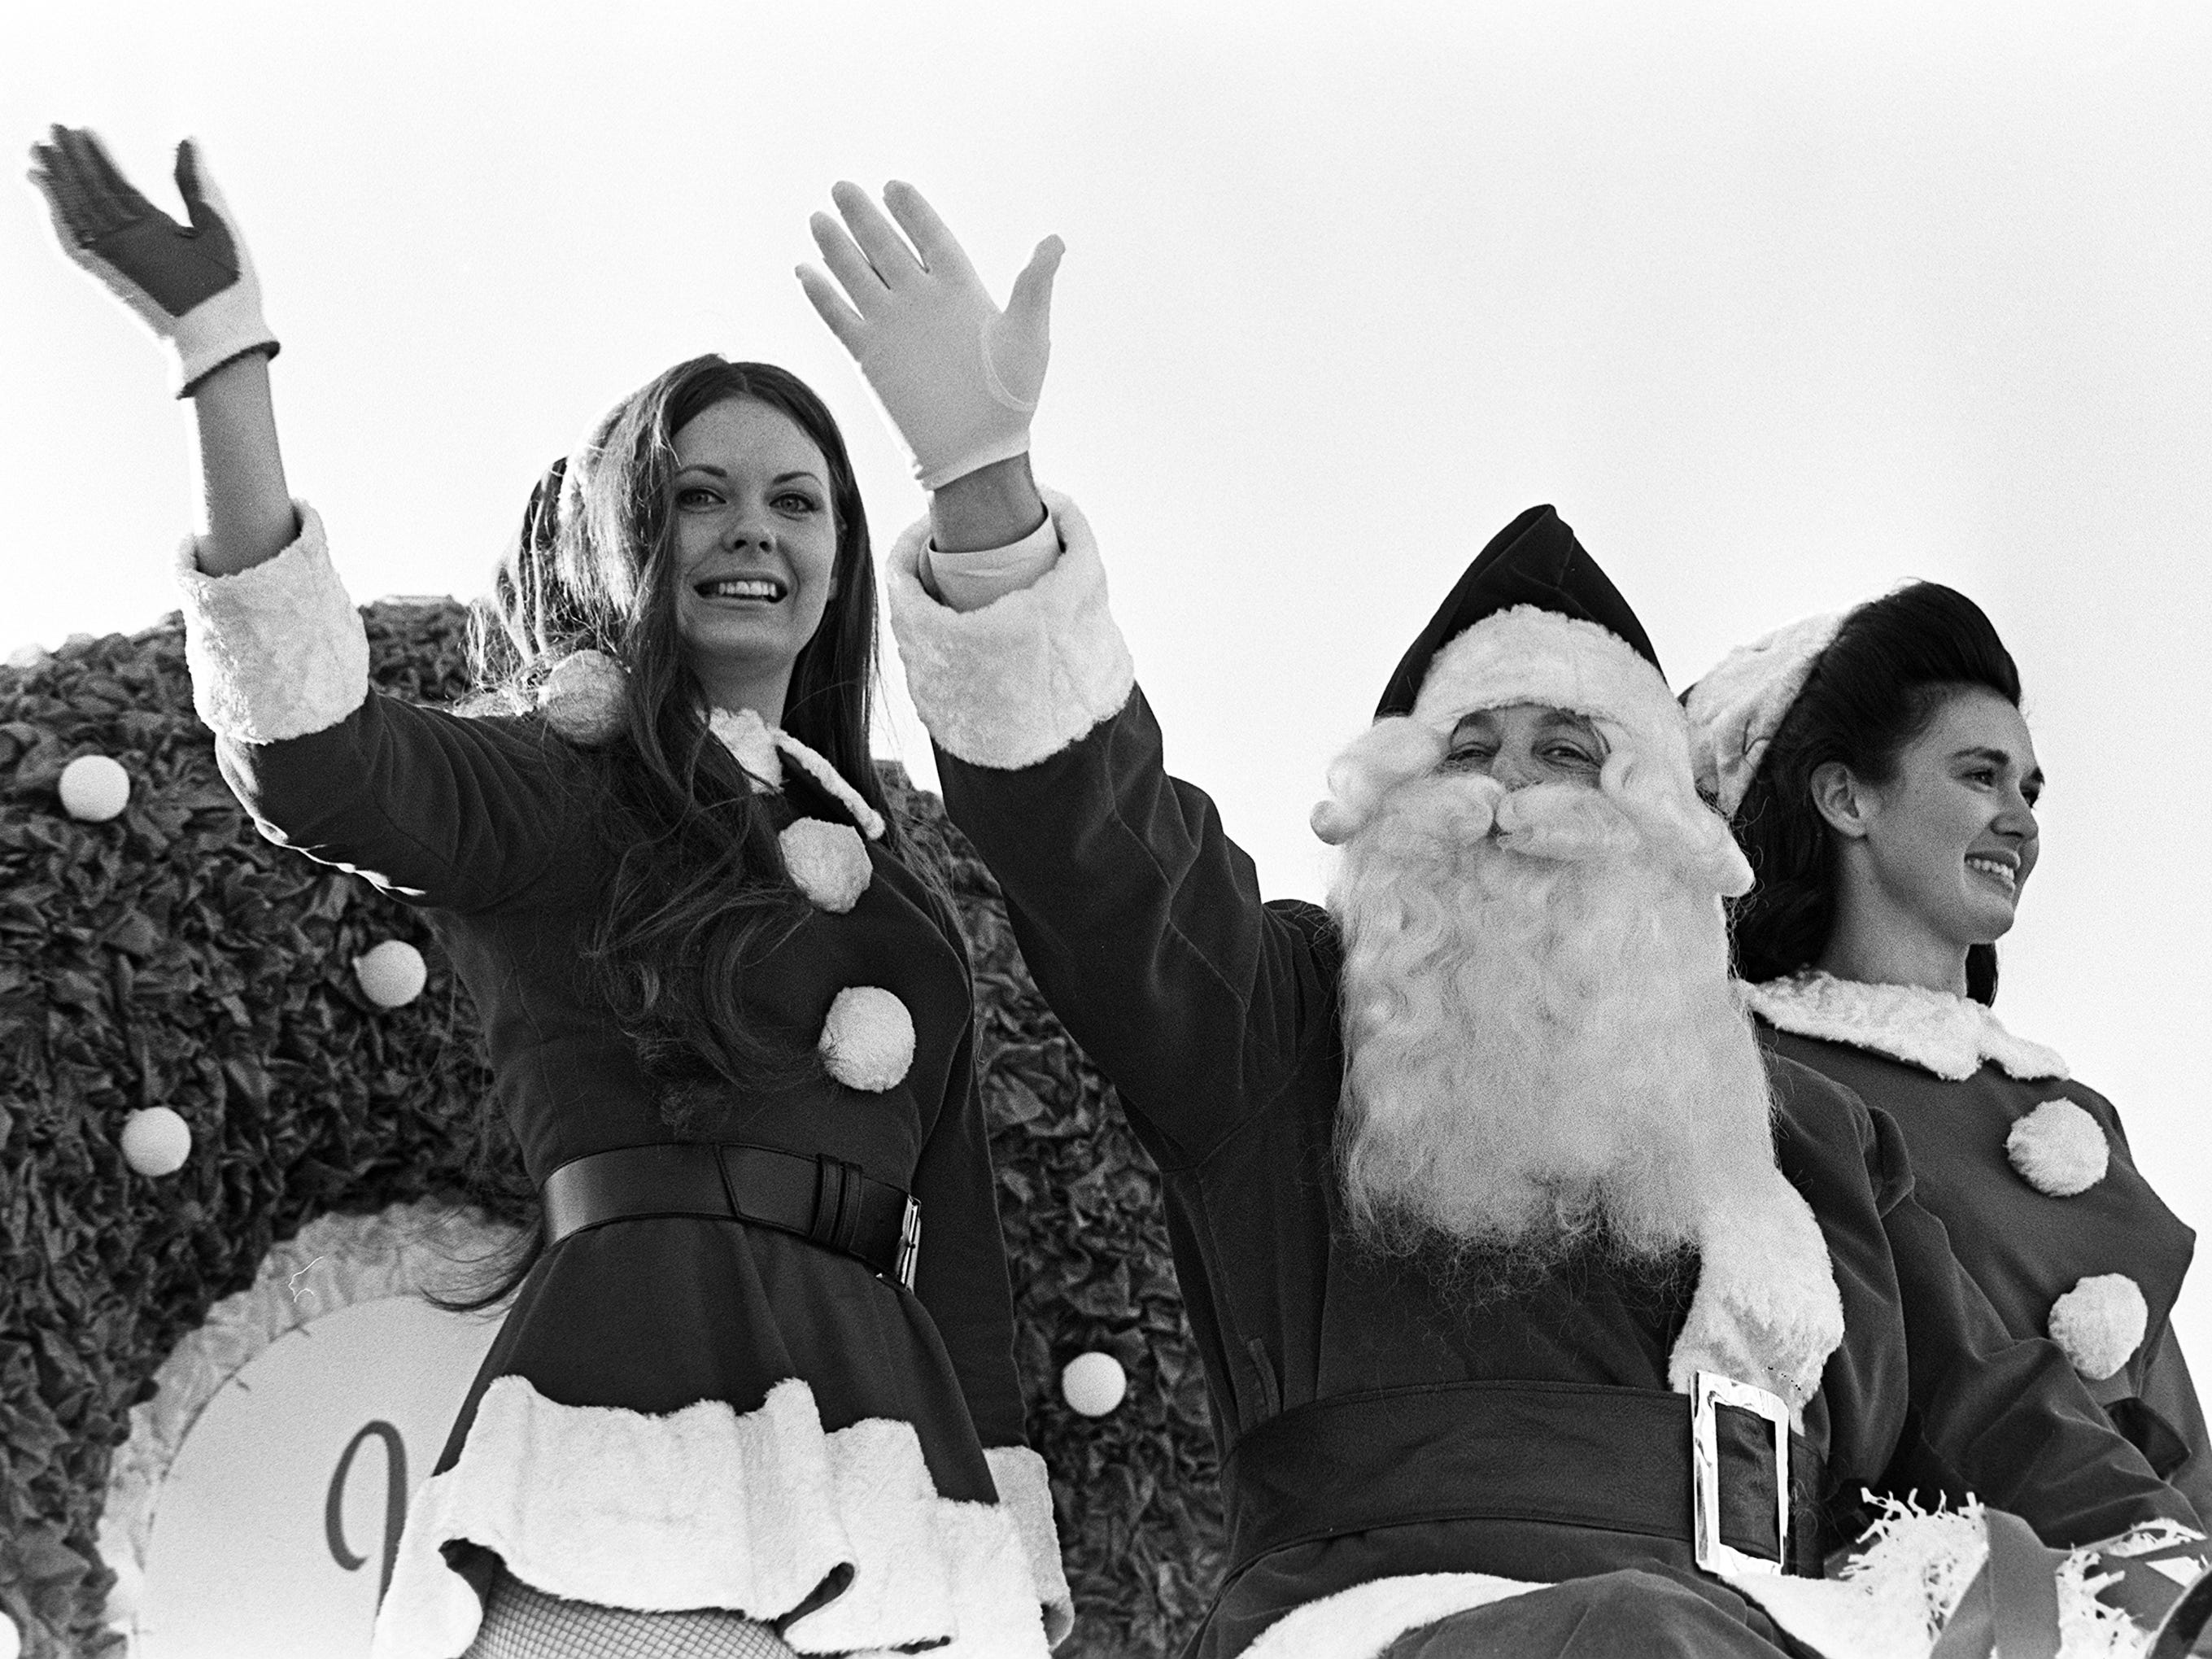 Santa Claus, the traditional favorite, and his two helpers, wave season's greetings to some of the estimated crowd of 125,000 at the 16th annual Nashville Christmas parade Dec. 8, 1968.